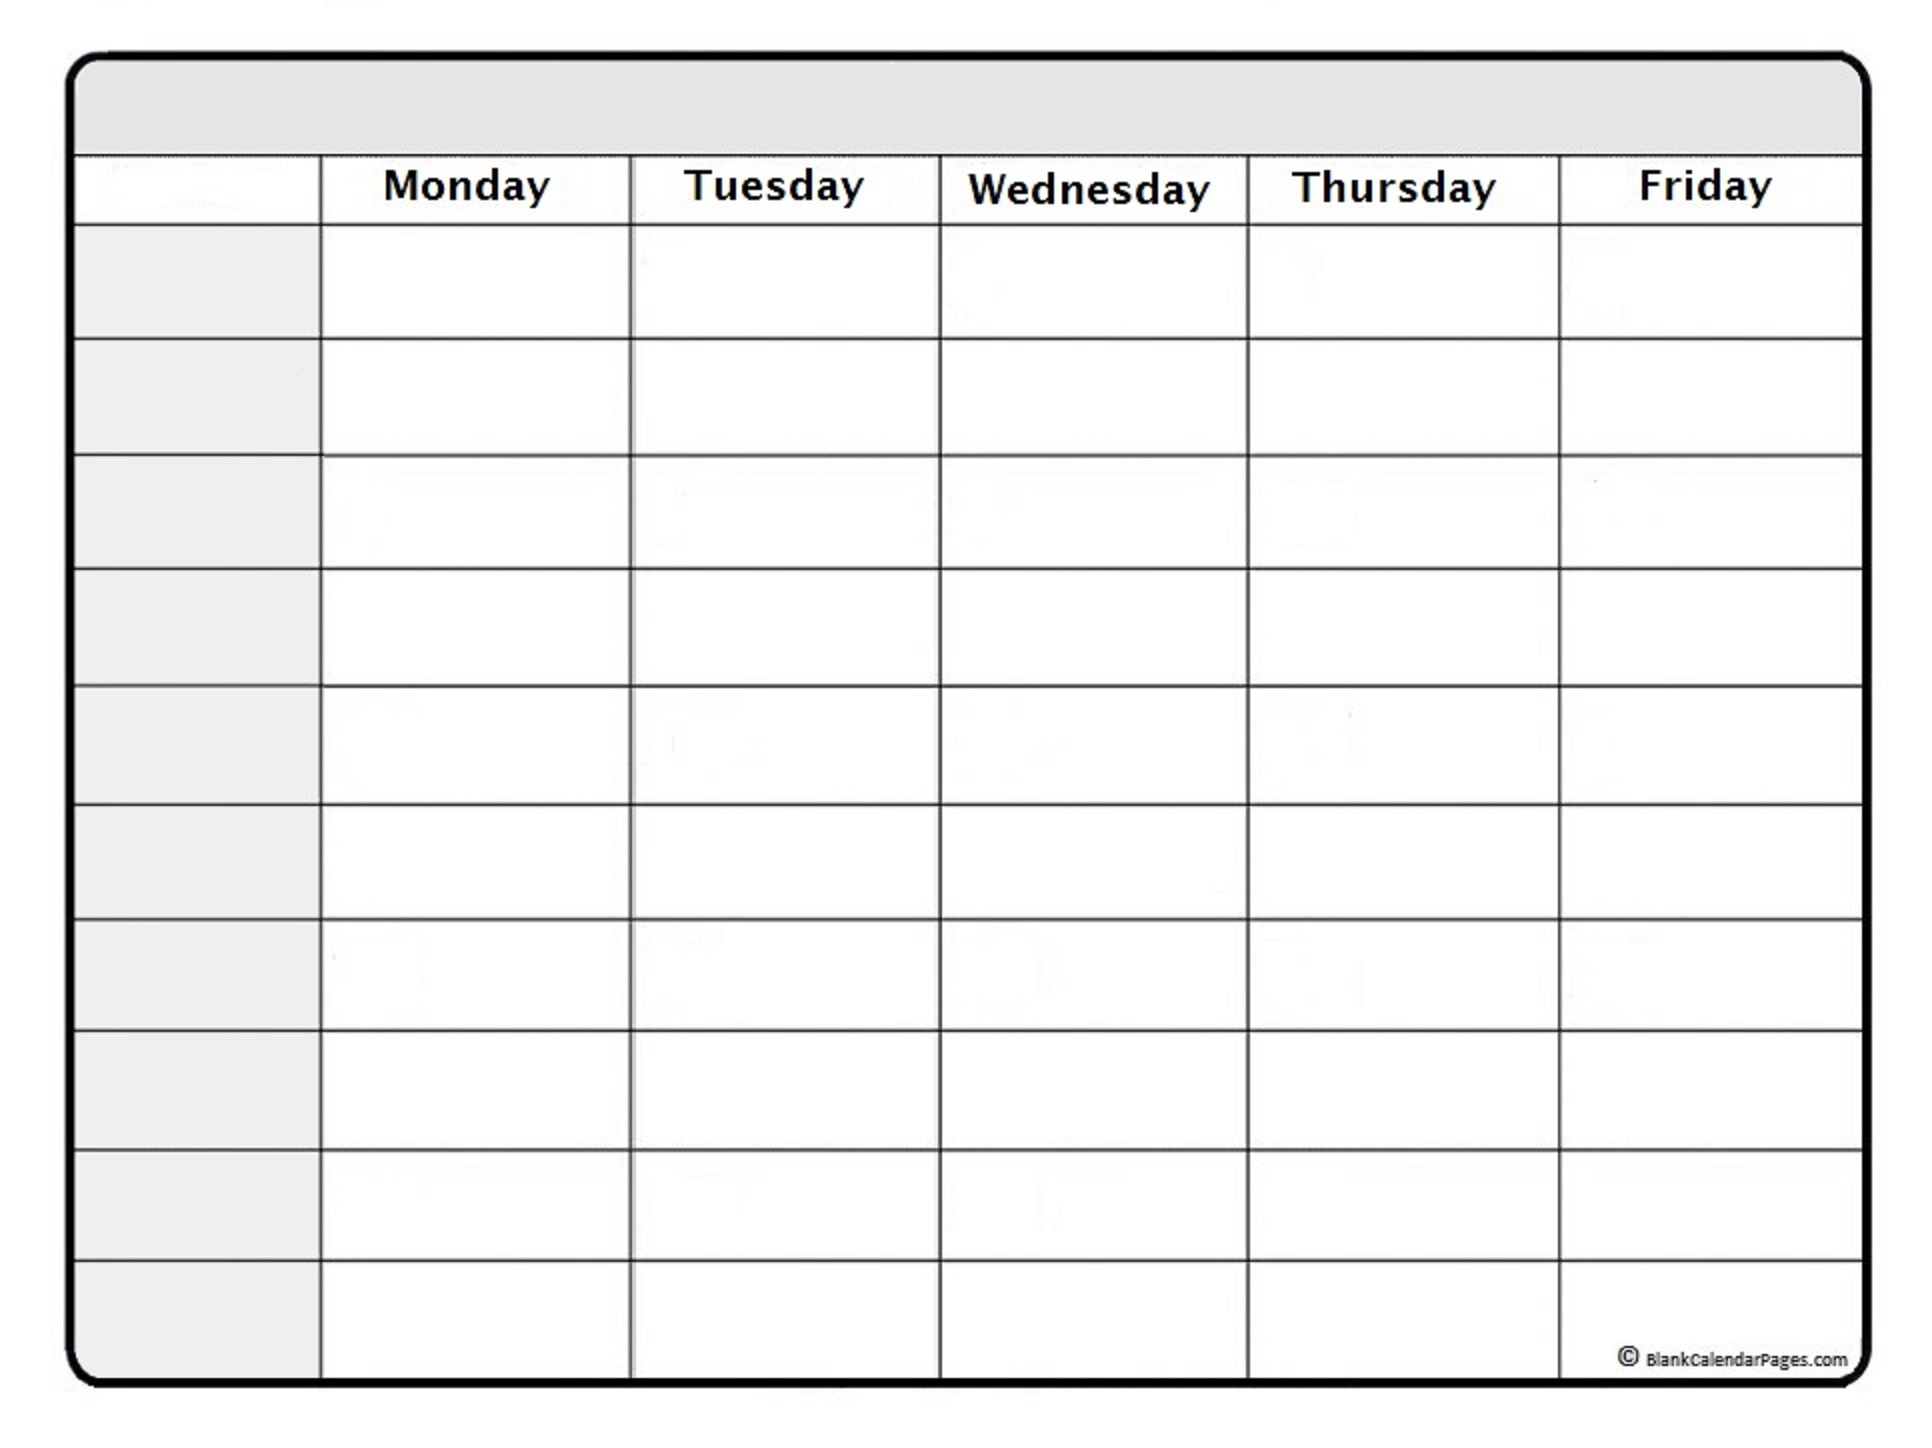 Free Printable Weekly Ar Schedule Template Pdf With Holidays | Smorad pertaining to Blank Printable Weekly Calendar